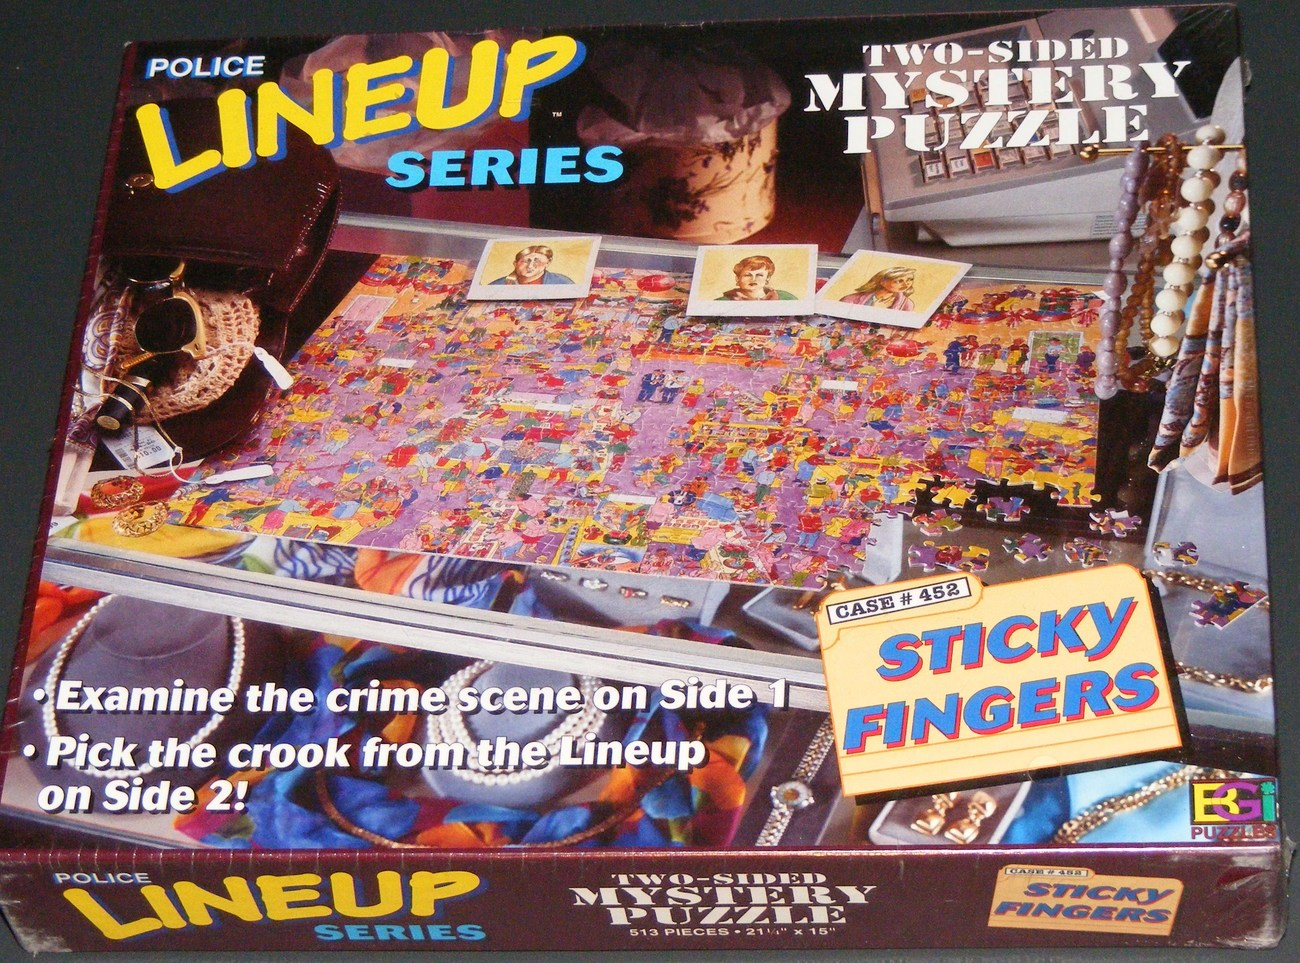 Primary image for Police Lineup Sticky Fingers Mystery Puzzle